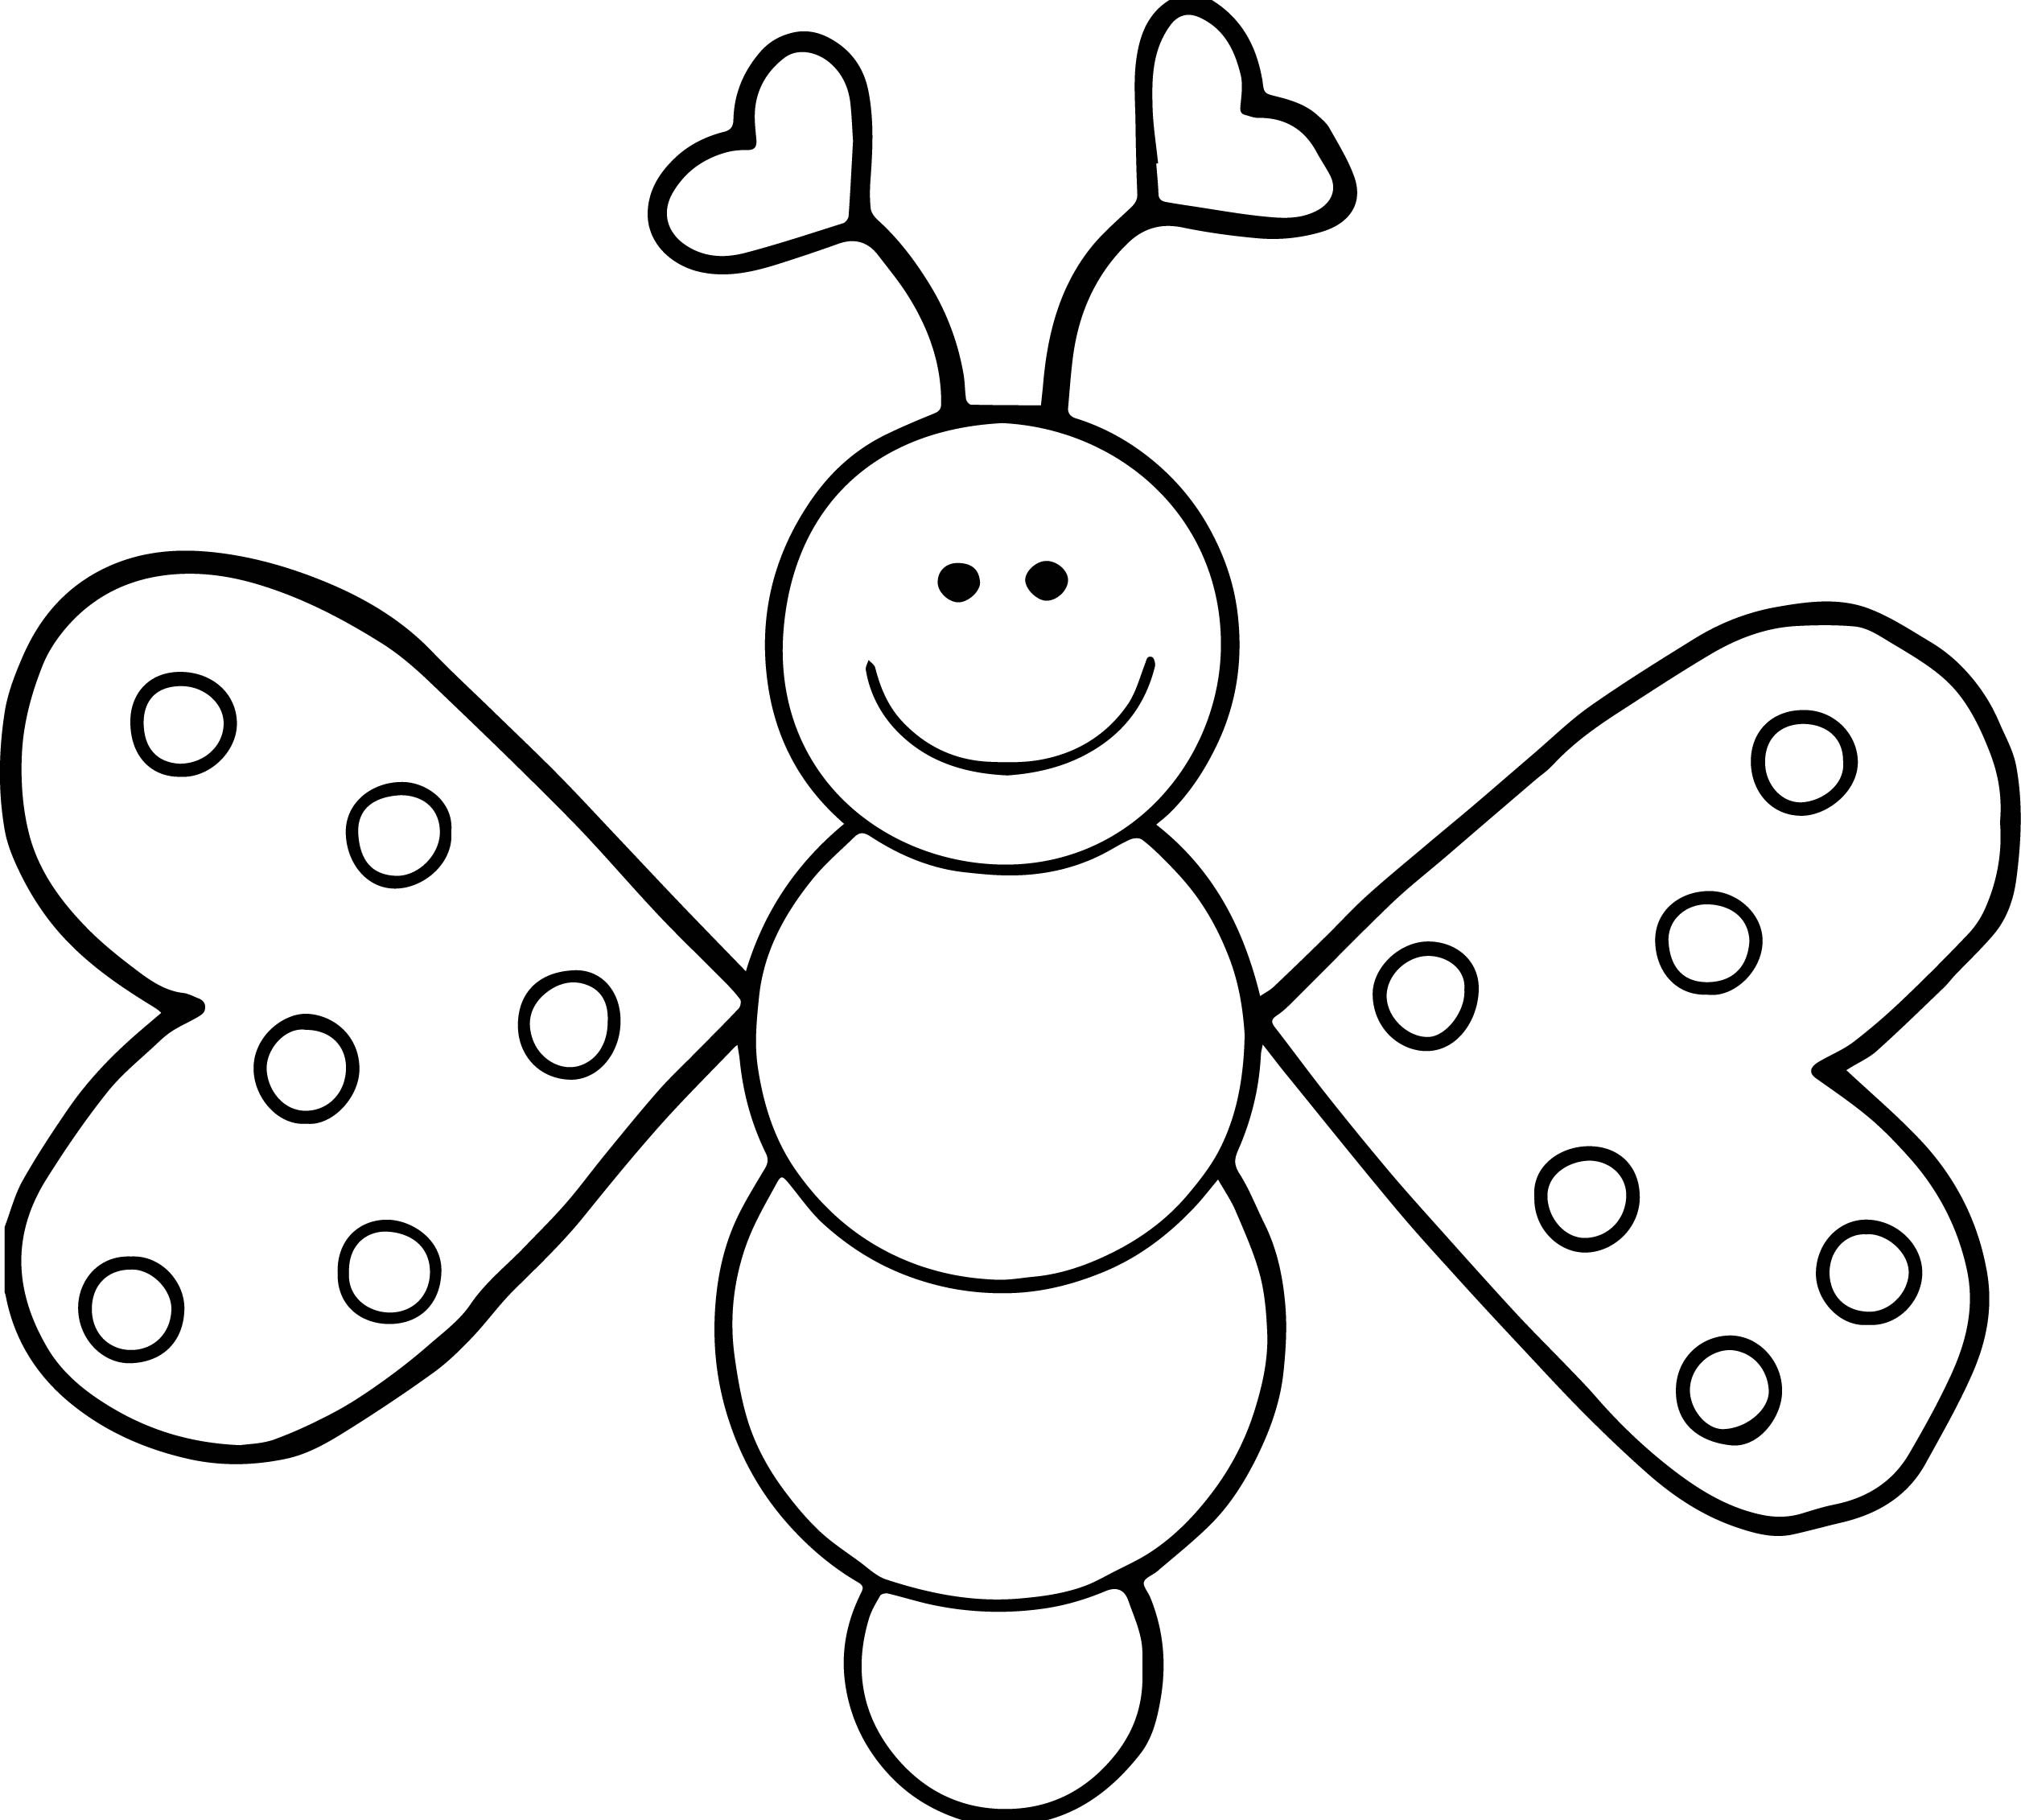 2512x2262 Competitive Cartoon Butterfly Coloring Pages Modest Of Animals